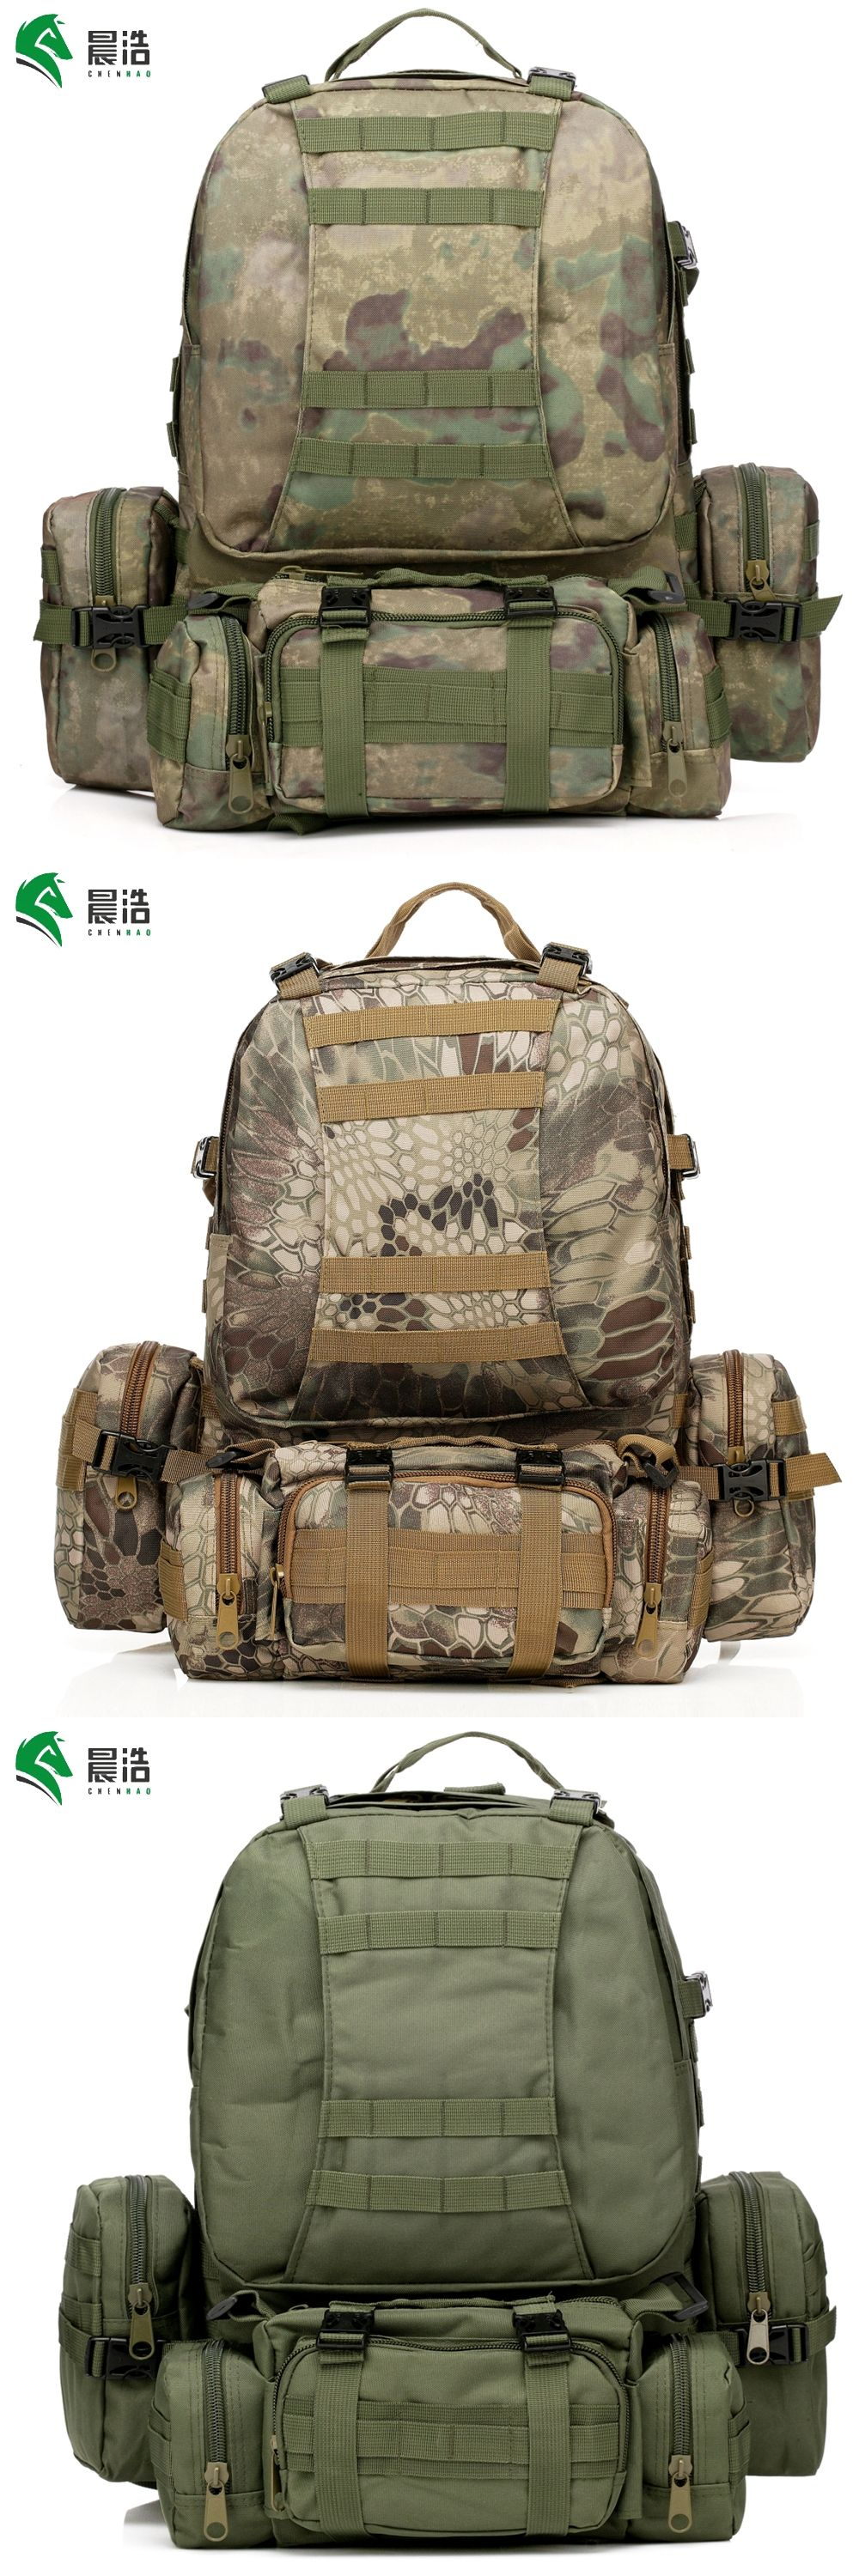 hot sale outdoor waterproof oxford Modular system tactical backpack 55 L military  backpack 3-day tactical assault bag military edf746e90d